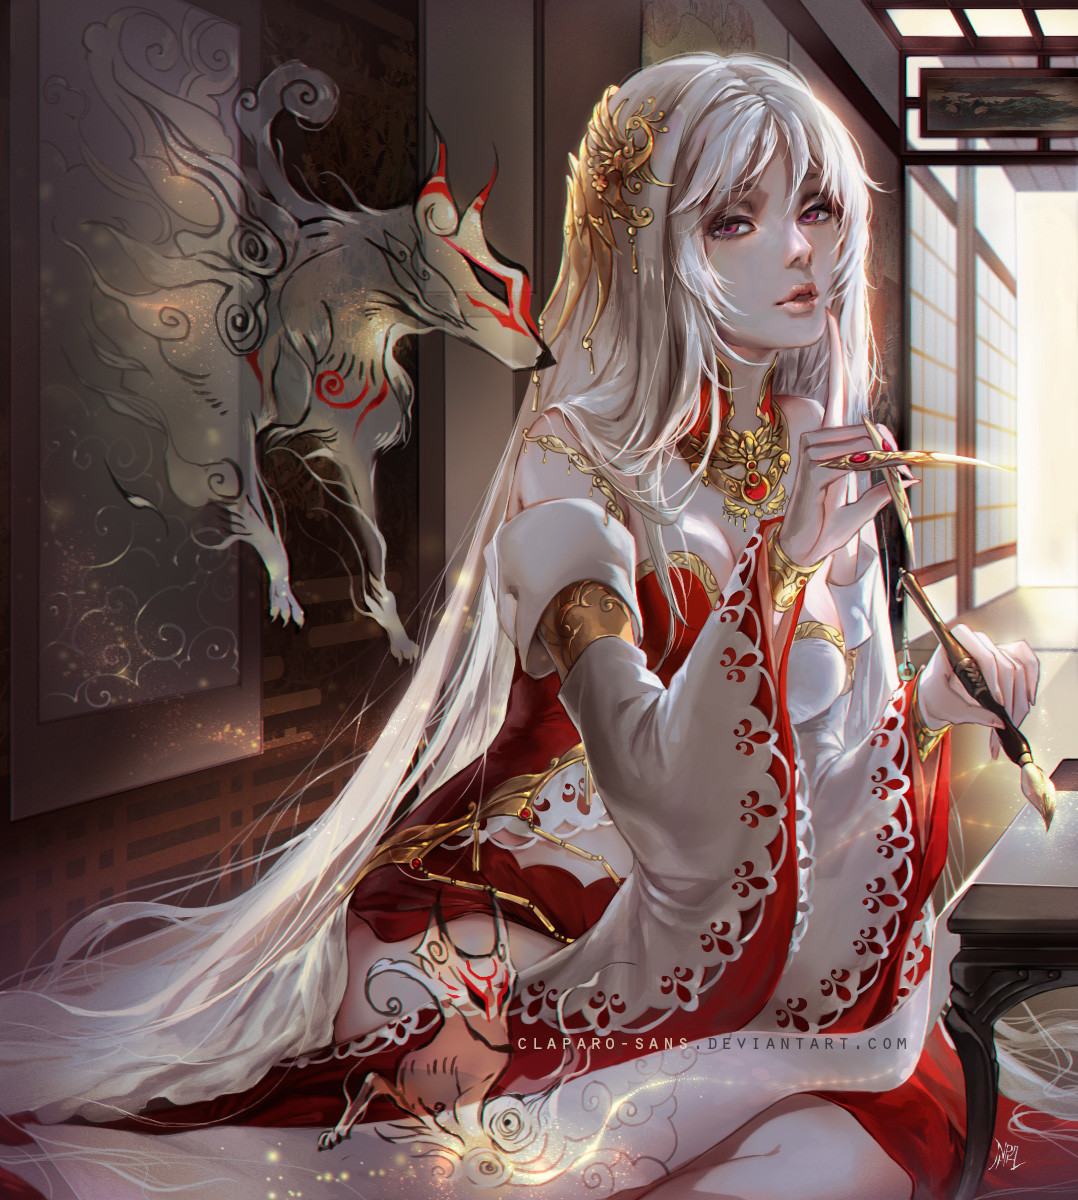 Kitsune Girl Hd Wallpaper Artstation Amaterasu Okami Benihime Phong Anh